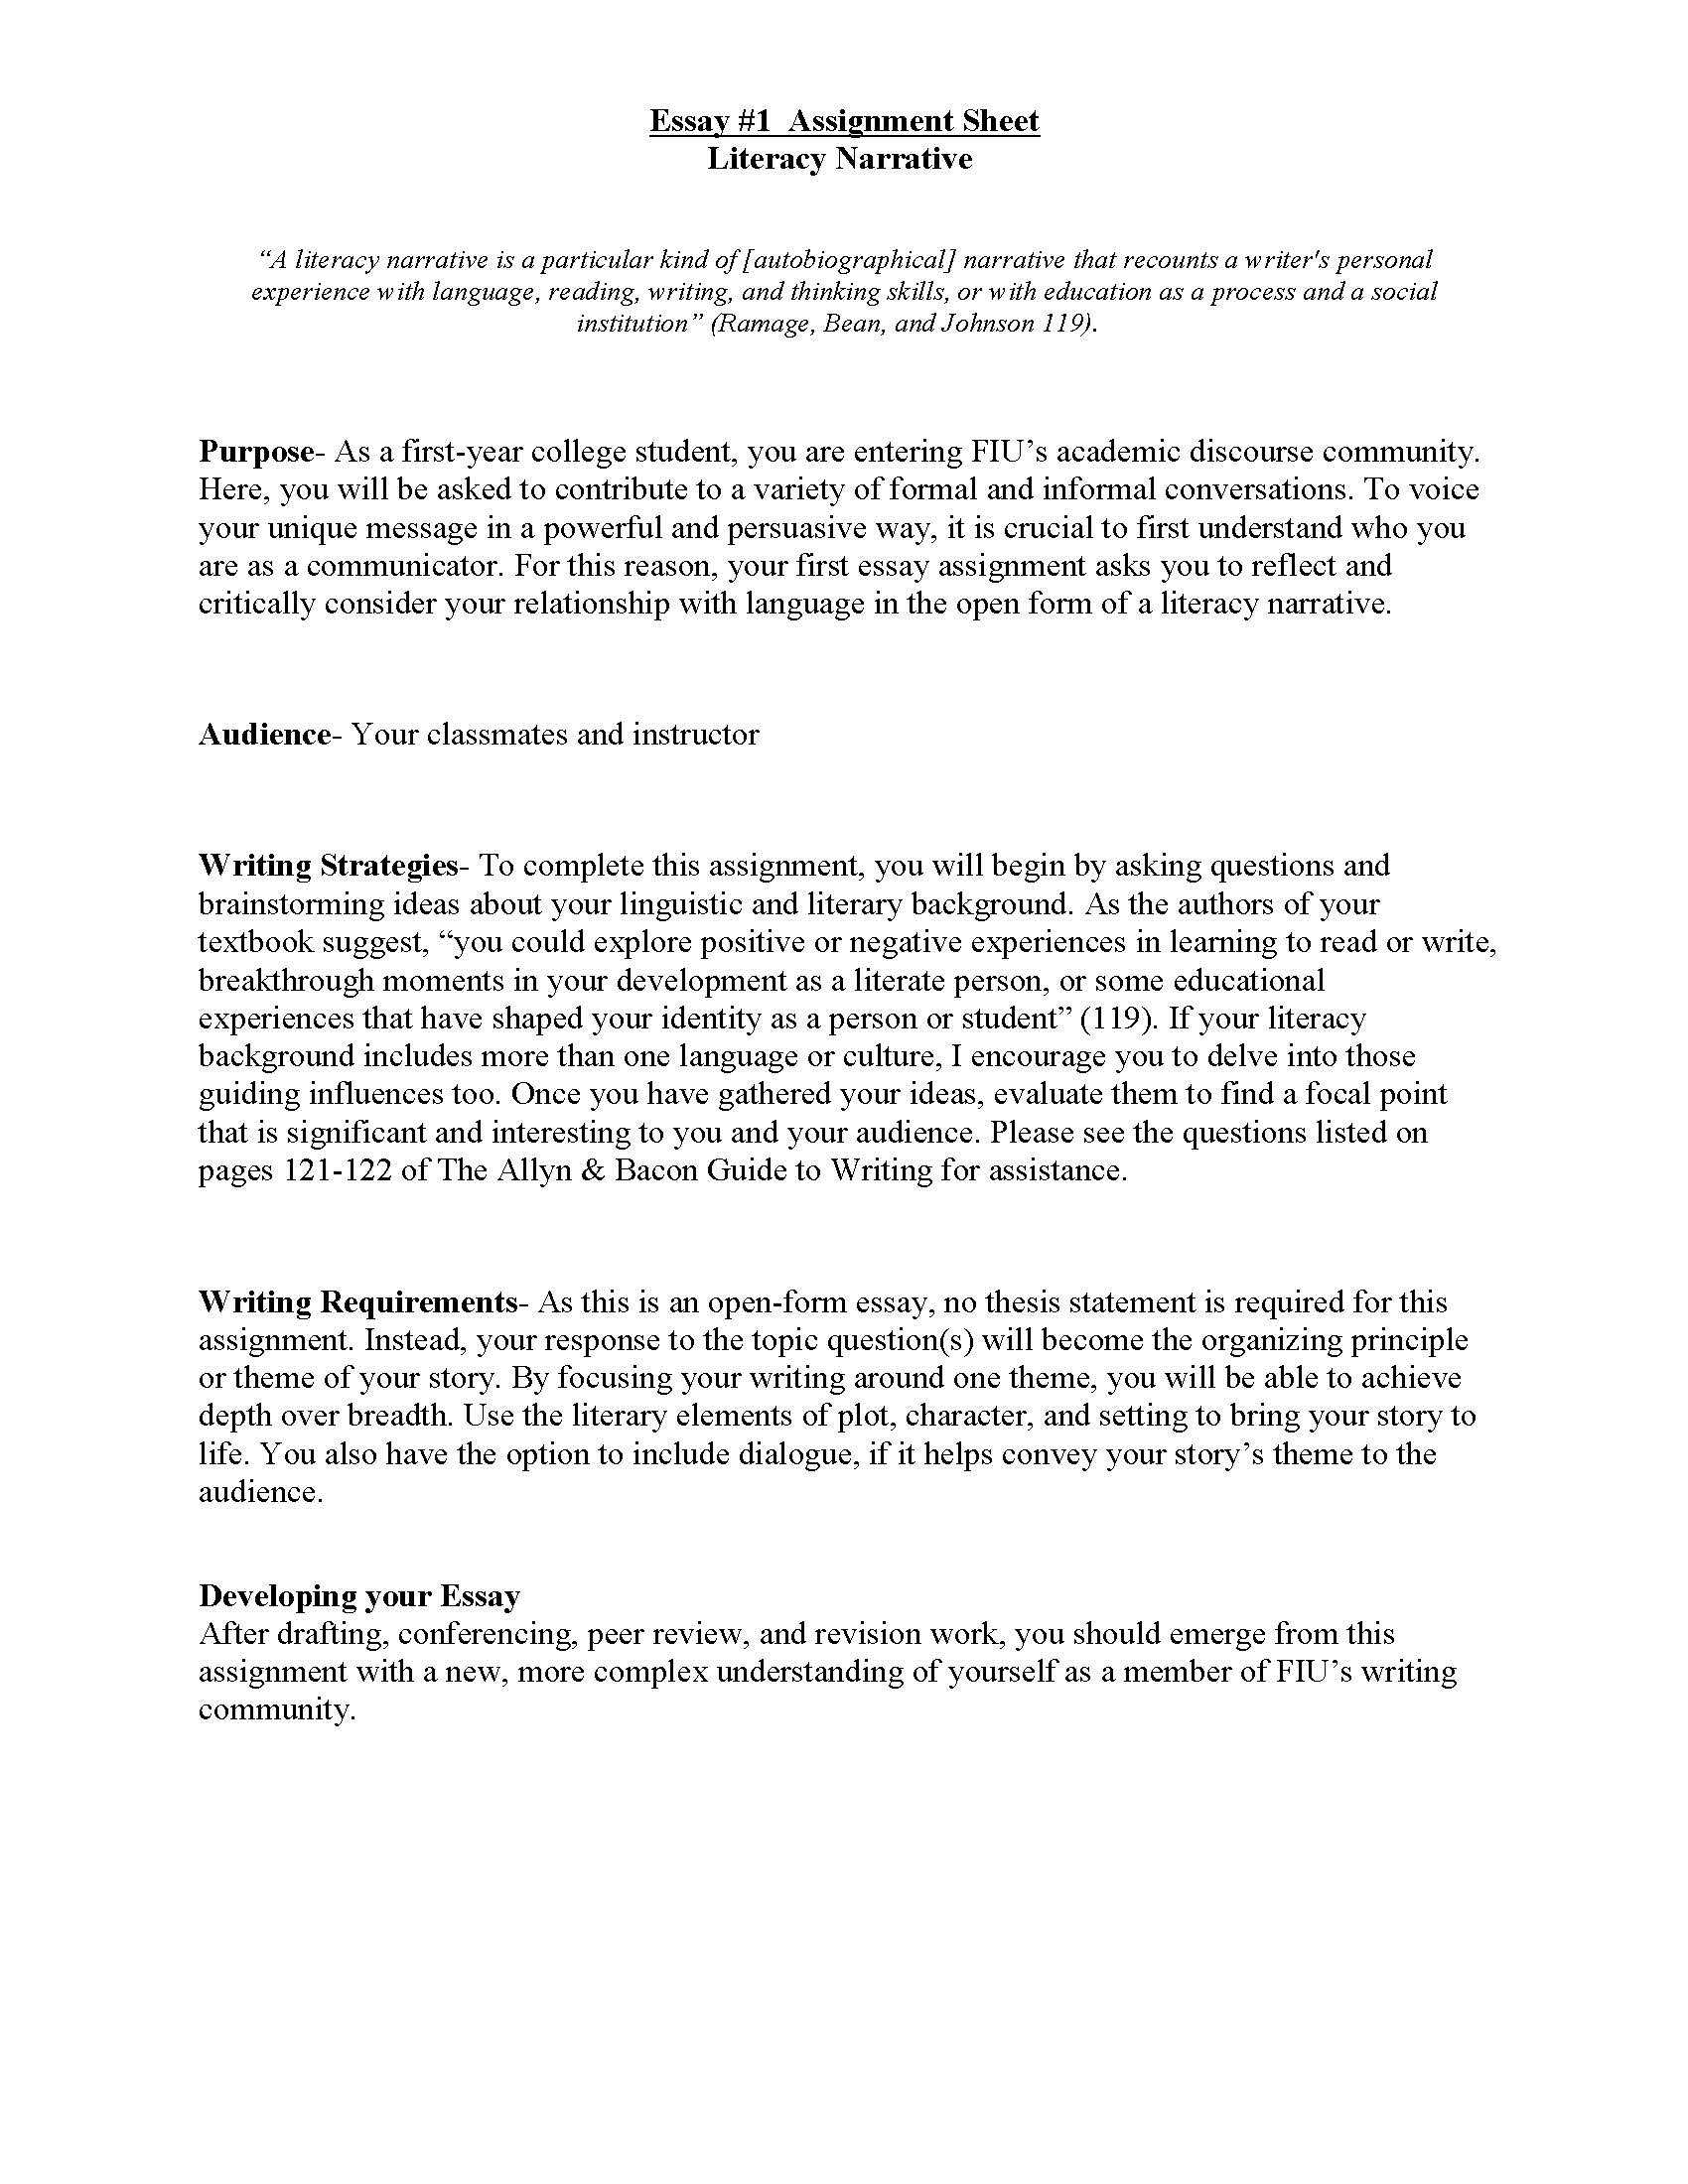 010 How To Write Personal Narrative Essay For College Literacy Unit Assignment Spring 2012 Page 1 Fascinating A Full